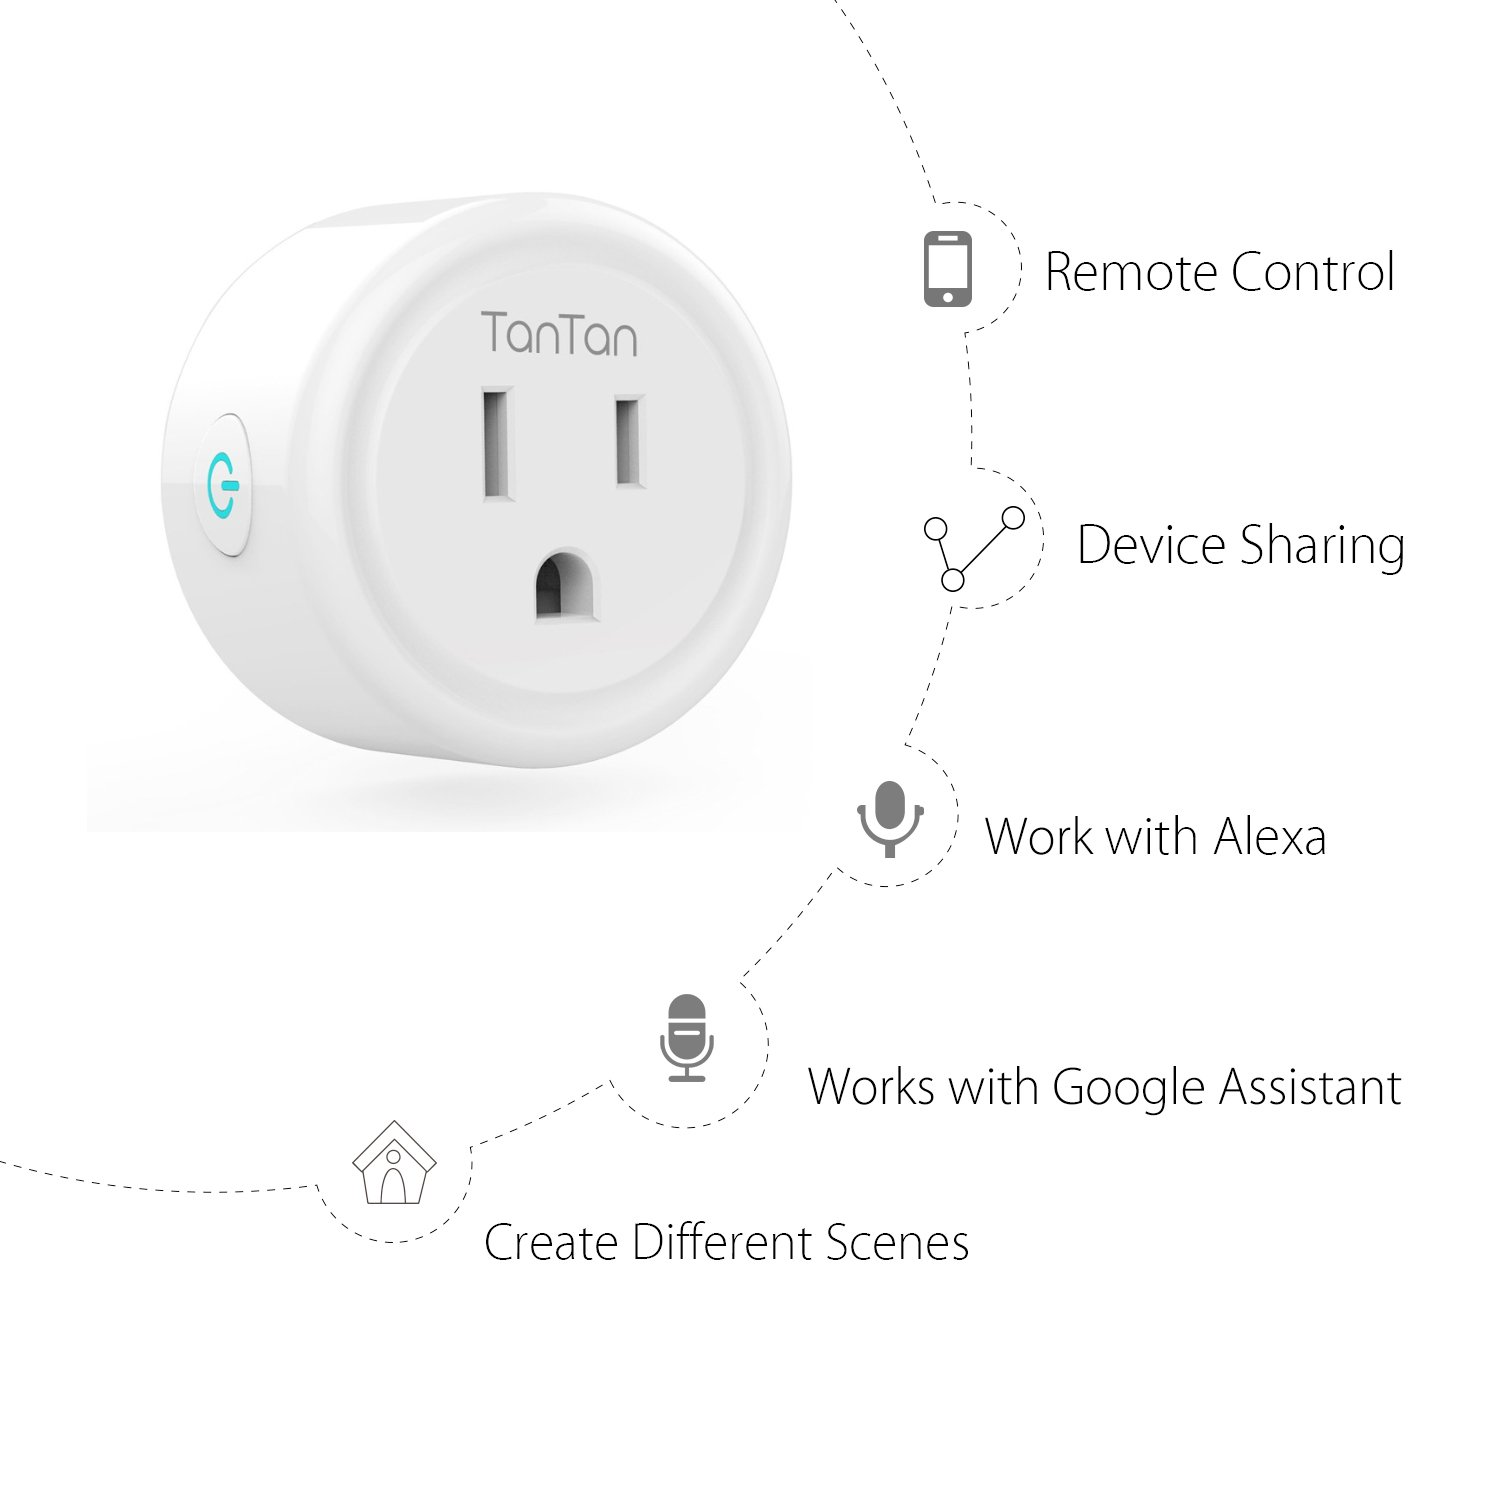 Smart Plug Tantan Wi Fi Wireless Mini Socket Outlet Works With Tan America Timer Wiring Diagram Amazon Alexa And Google Home Ifttt No Hub Required Remote Control Your Devices From